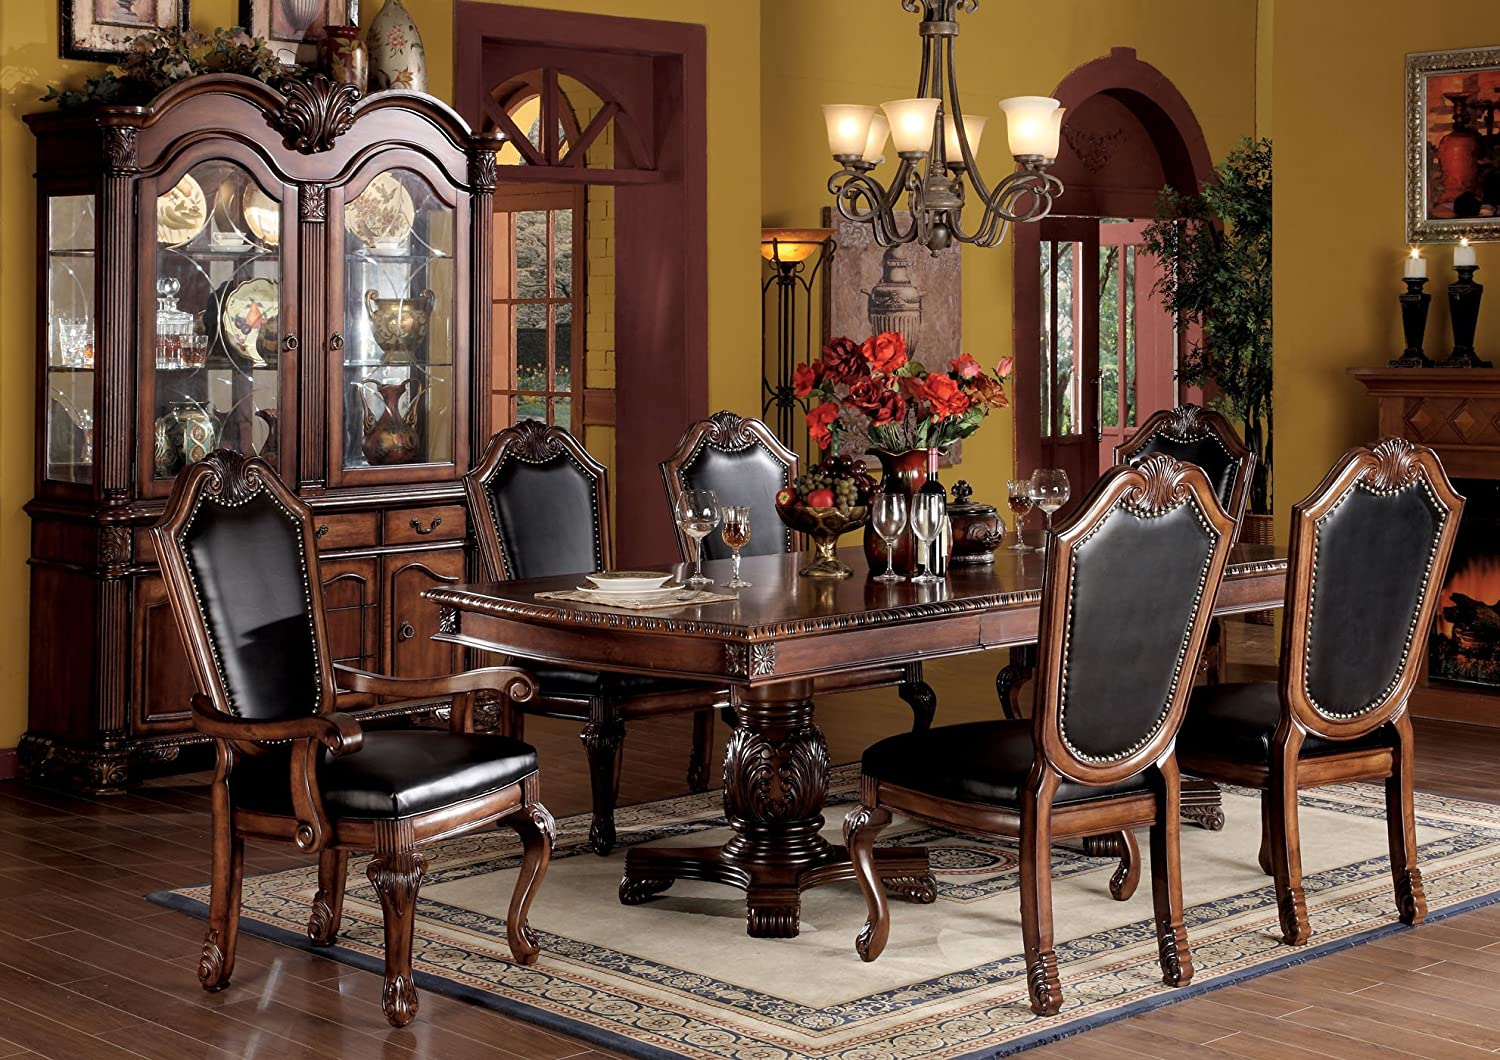 Amazon.com   ACME 04075B SET Chateau De Ville 7 Piece Formal Dining Set,  Table/4 Chairs/2 Arm Chairs, Cherry Oak Finish   Table U0026 Chair Sets